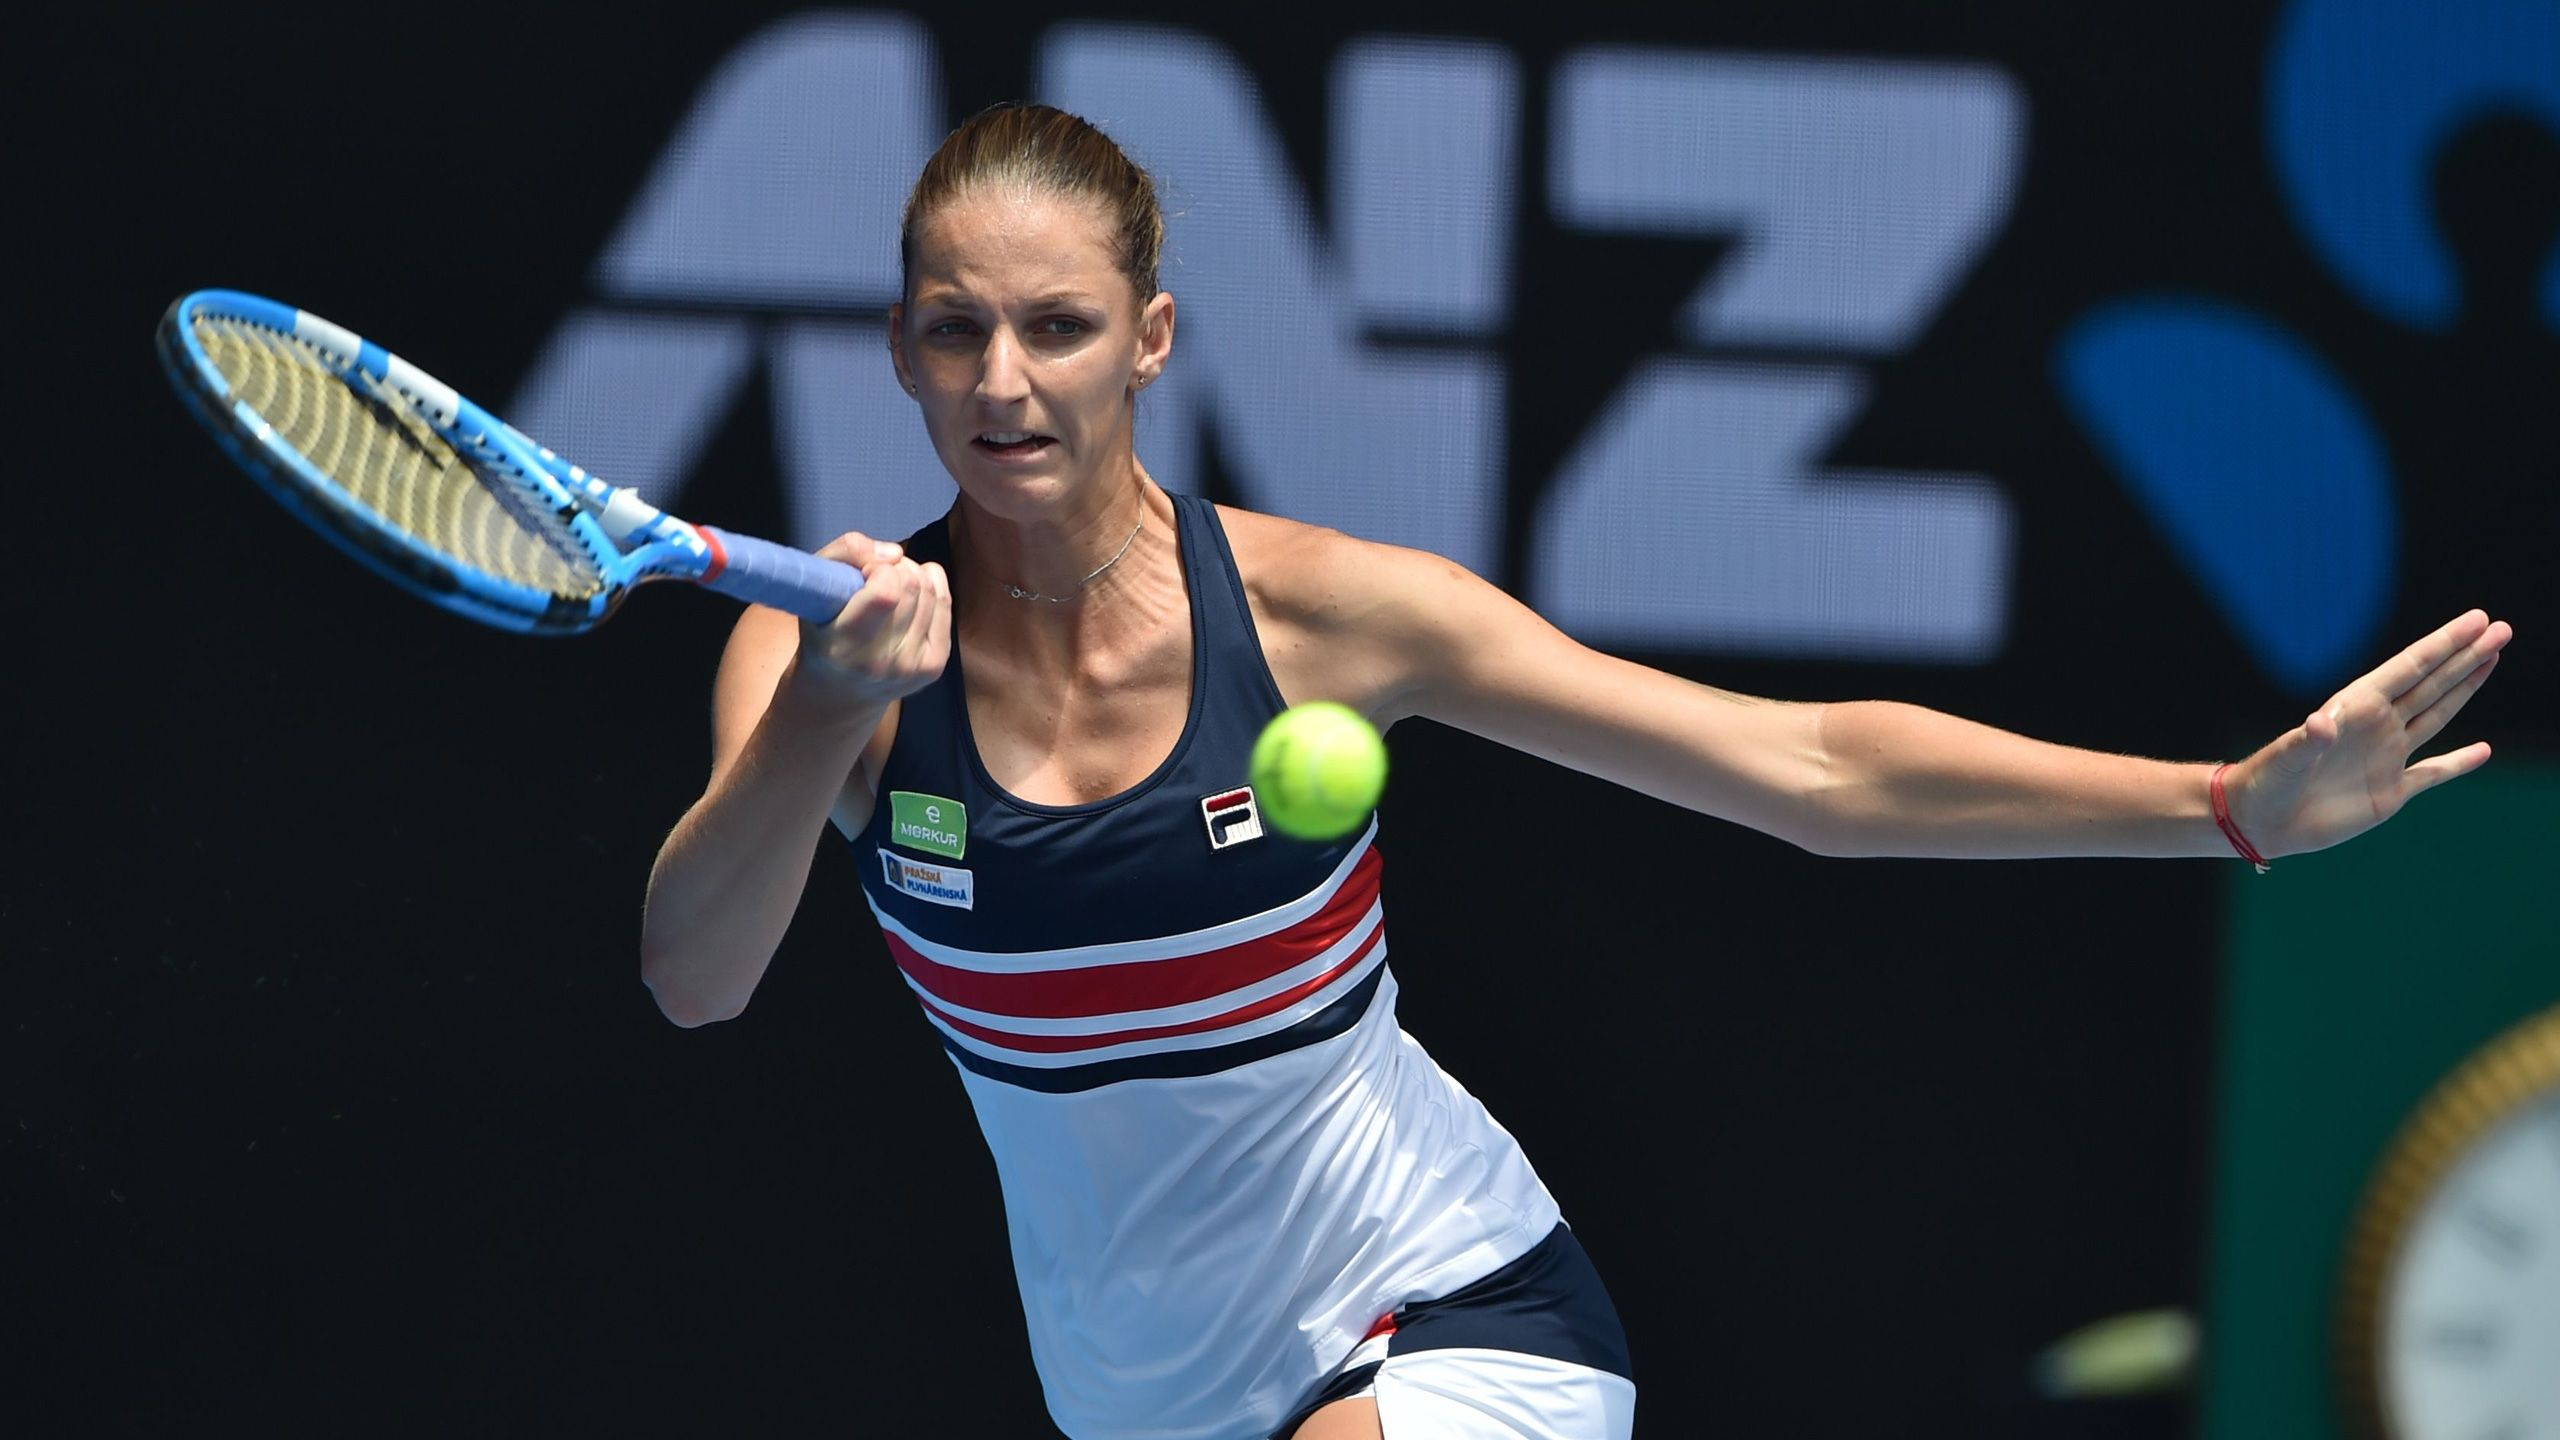 (6) Pliskova vs. (20) Strycova (Women's Fourth Round)